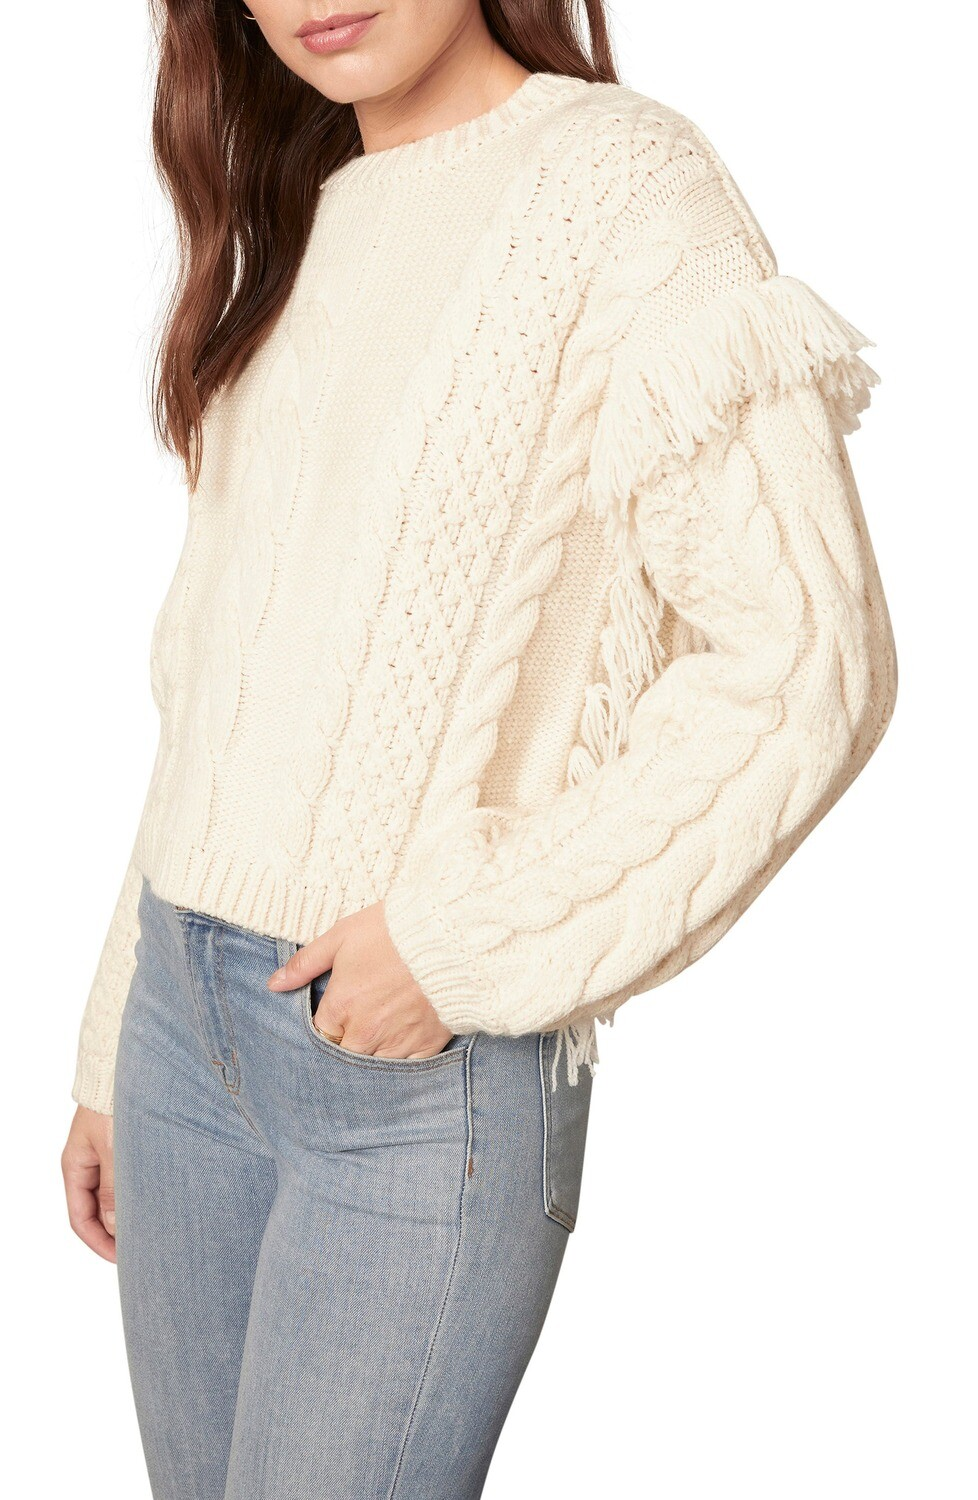 Cream Fringed Cable Knit Sweater